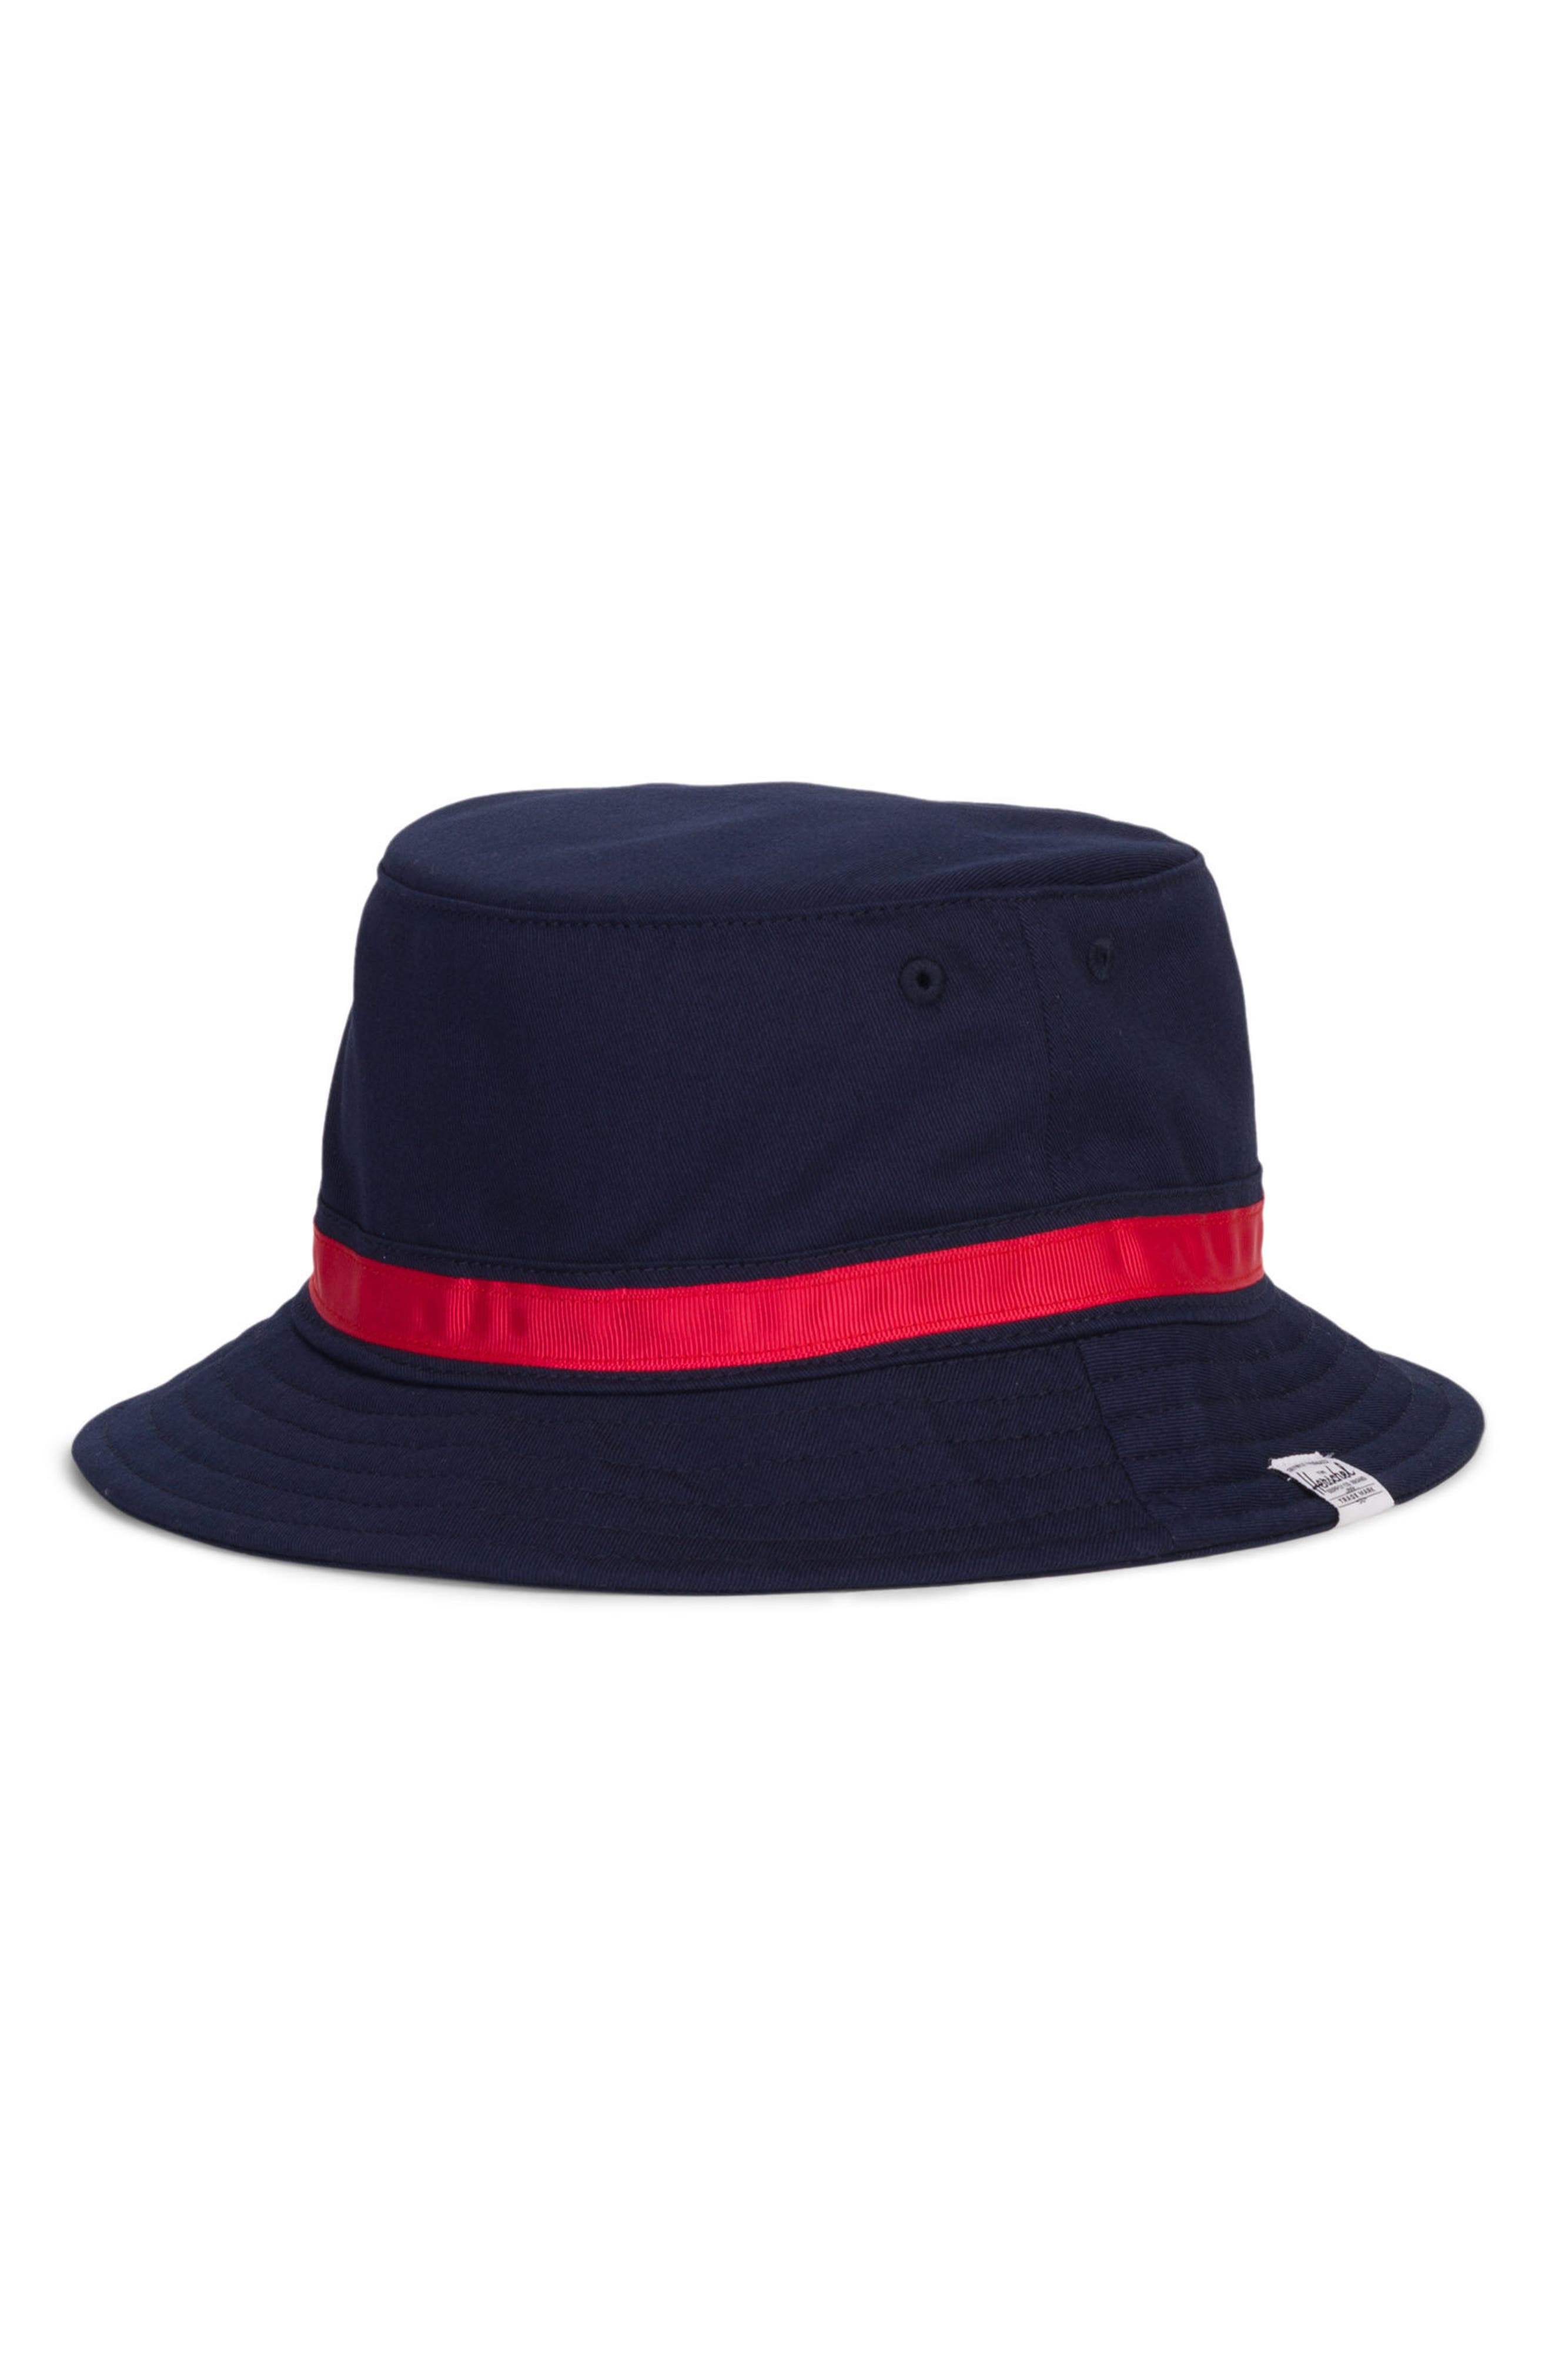 Two-Tone Lake Bucket Hat,                             Alternate thumbnail 2, color,                             Navy/ Red